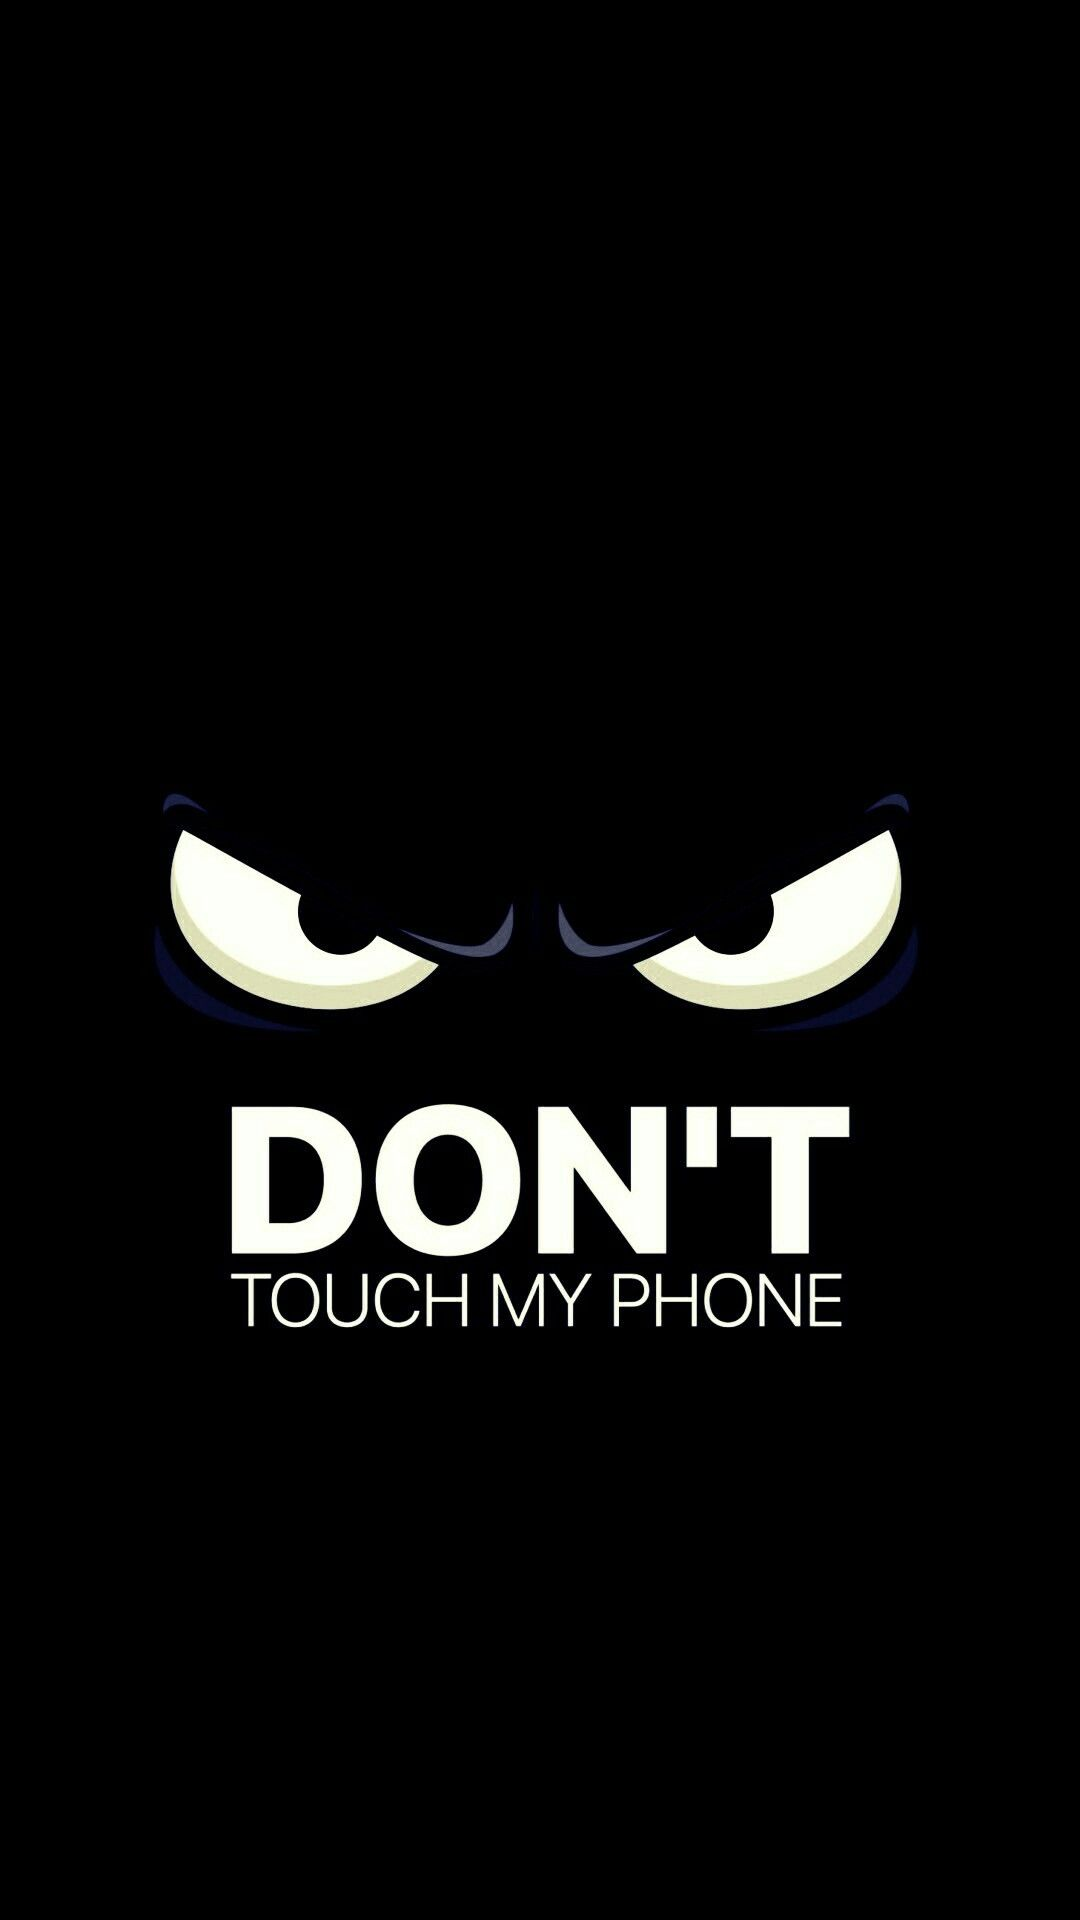 Wallpaper Dont Touch My Phone 72 Images Dont Touch My